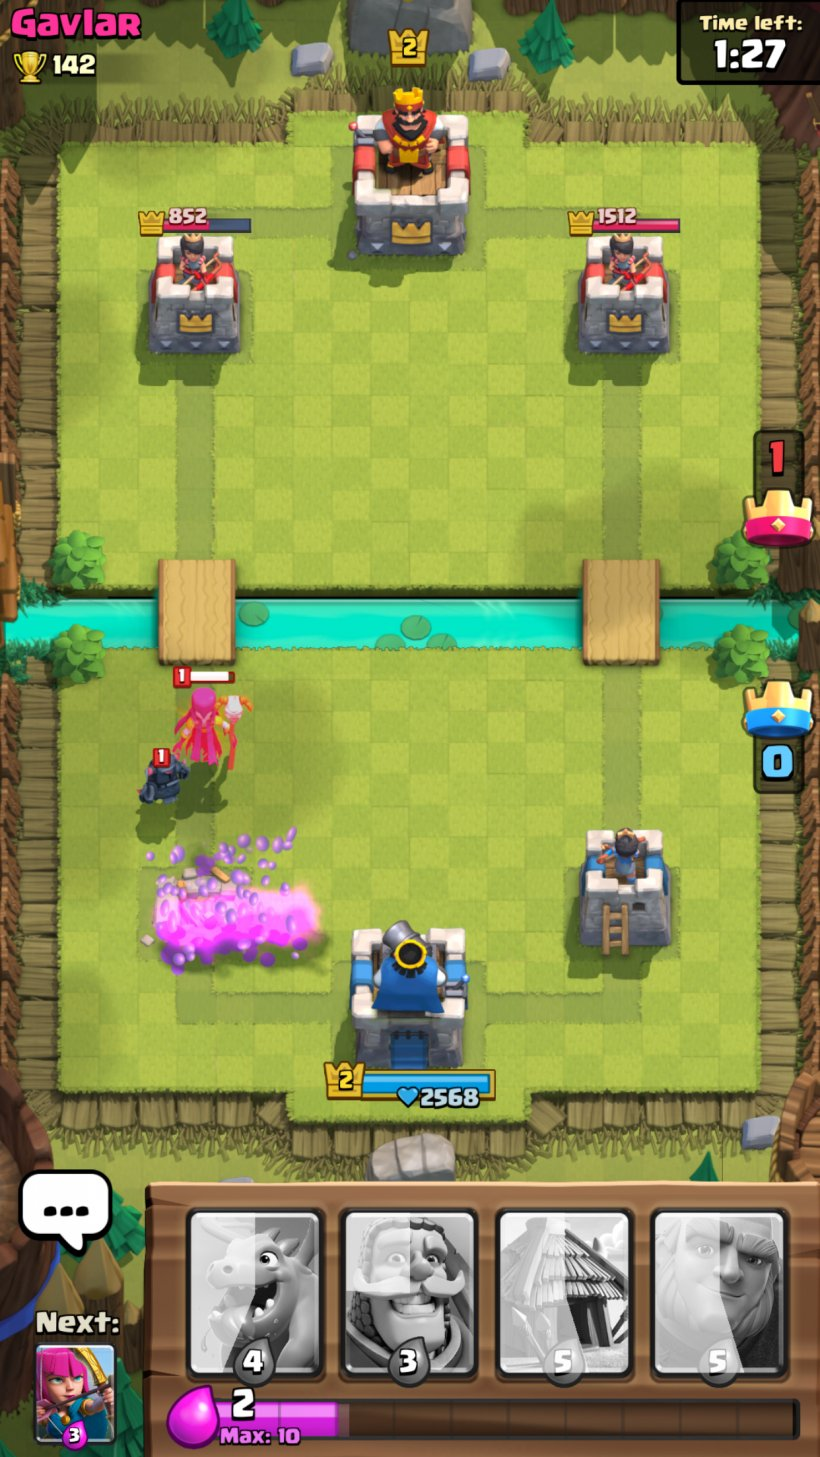 Clash Royale - Get ready to rumble, and then rumble